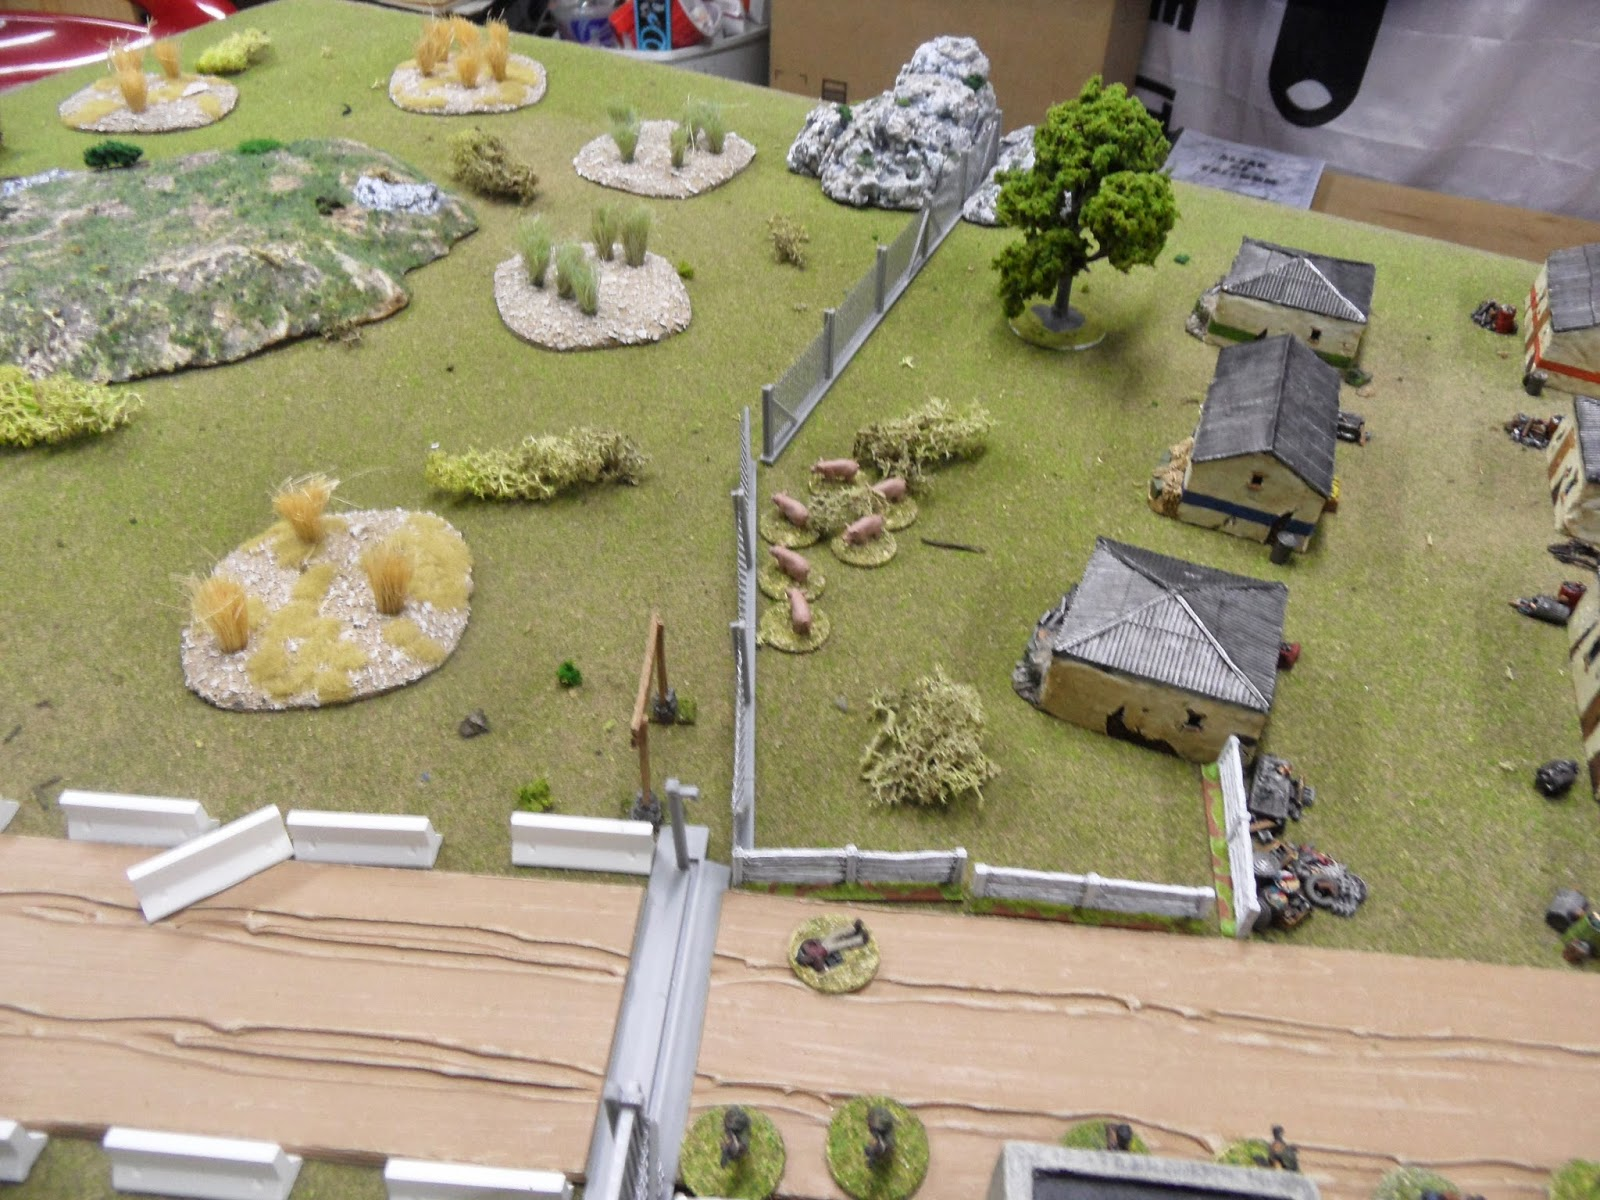 The brave pigs revealed both of the Blinds on the left flank to be Dummy Blinds!